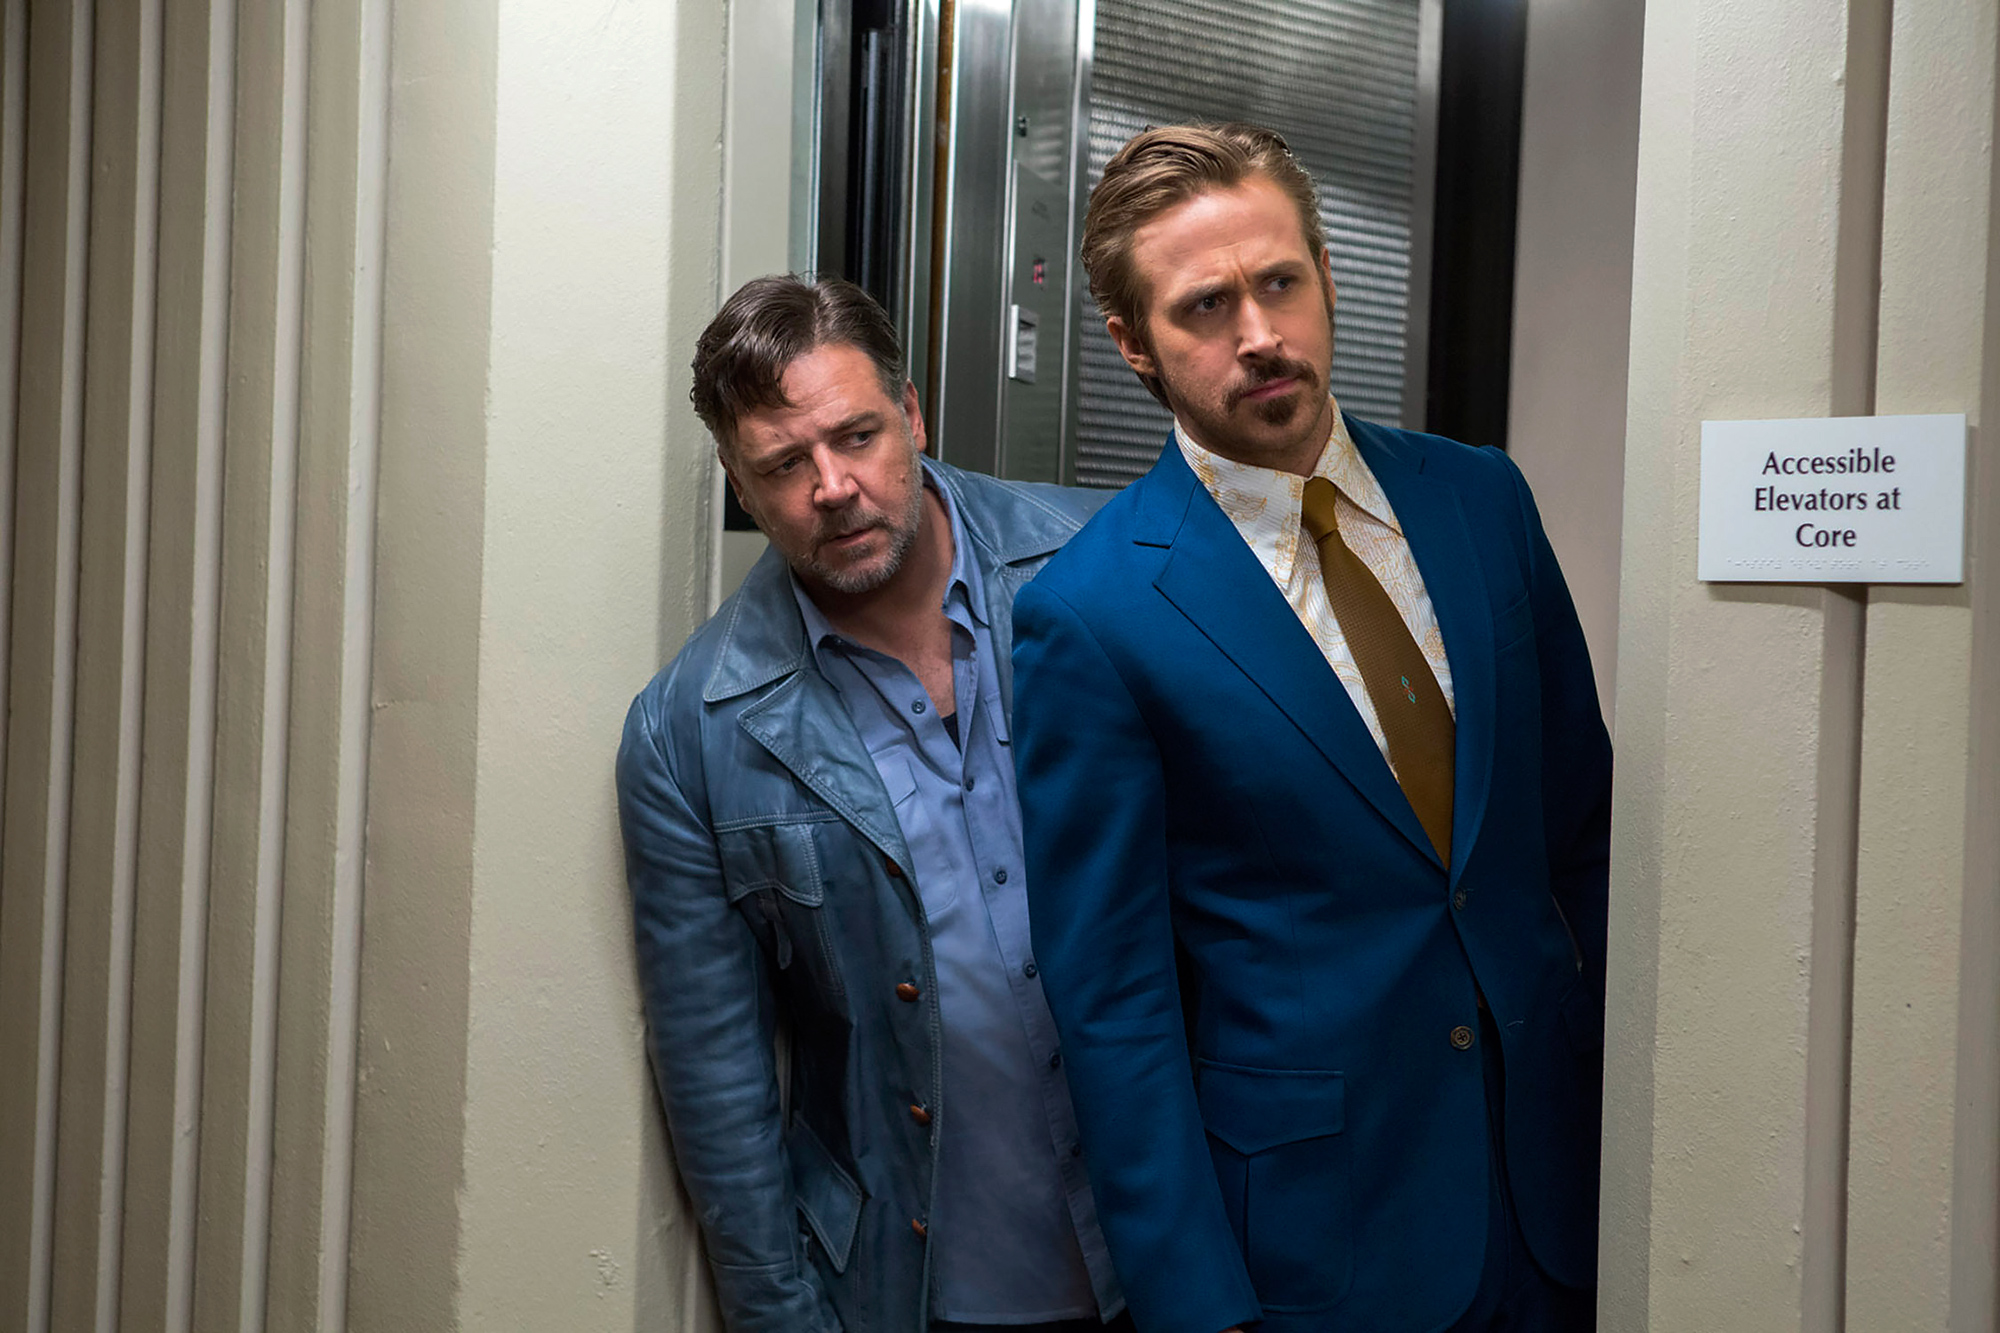 MOVIE REVIEW: The Nice Guys (2016)